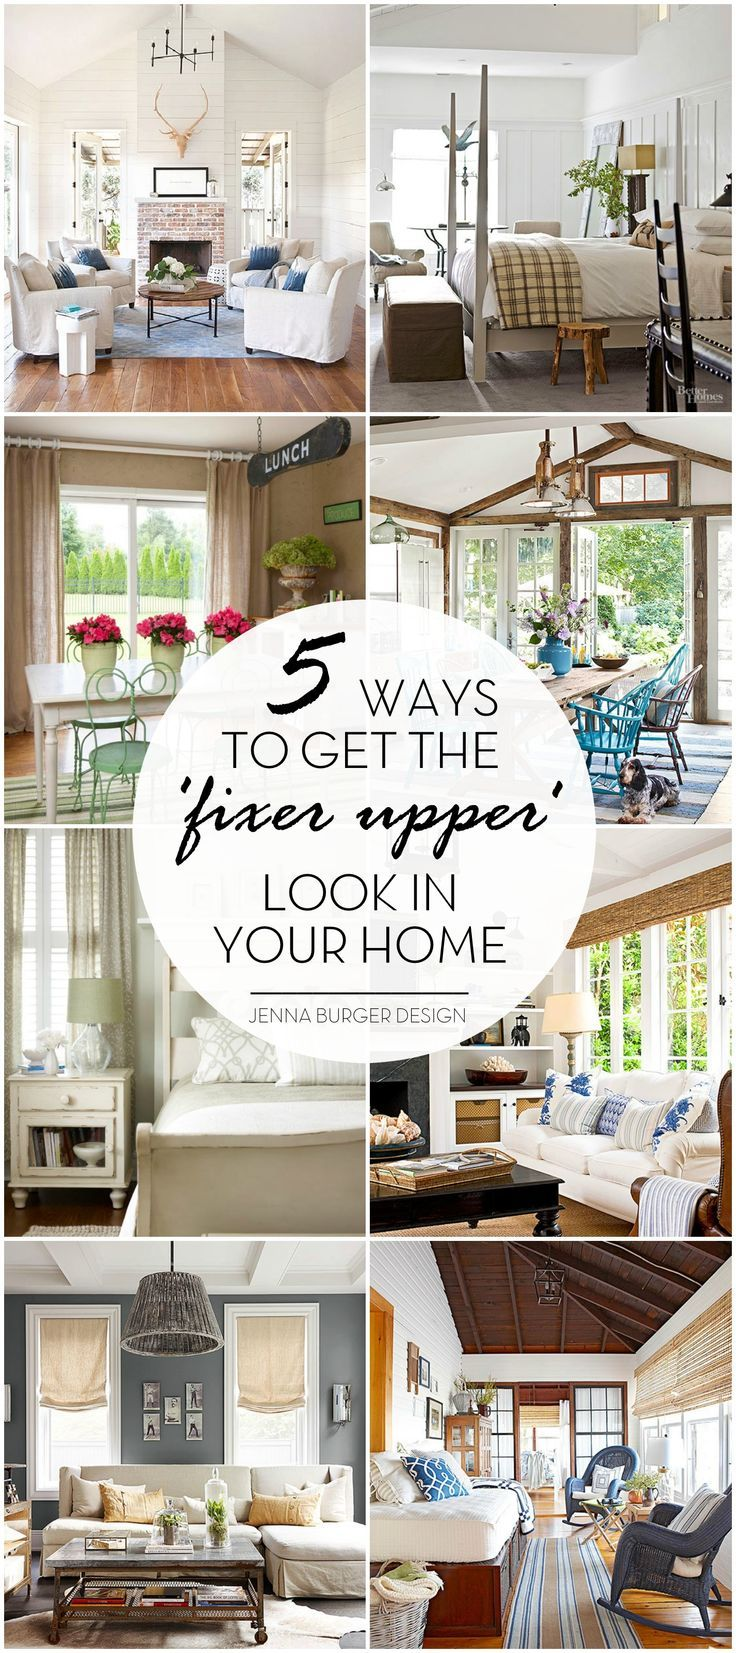 Who doesn't love the HGTV show Fixer Upper with Joanna + Chip Gaines?! Check out these 5 Ways to Get the 'FIXER UPPER' style in your home. Inspiration round up by www.JennaBurger.com